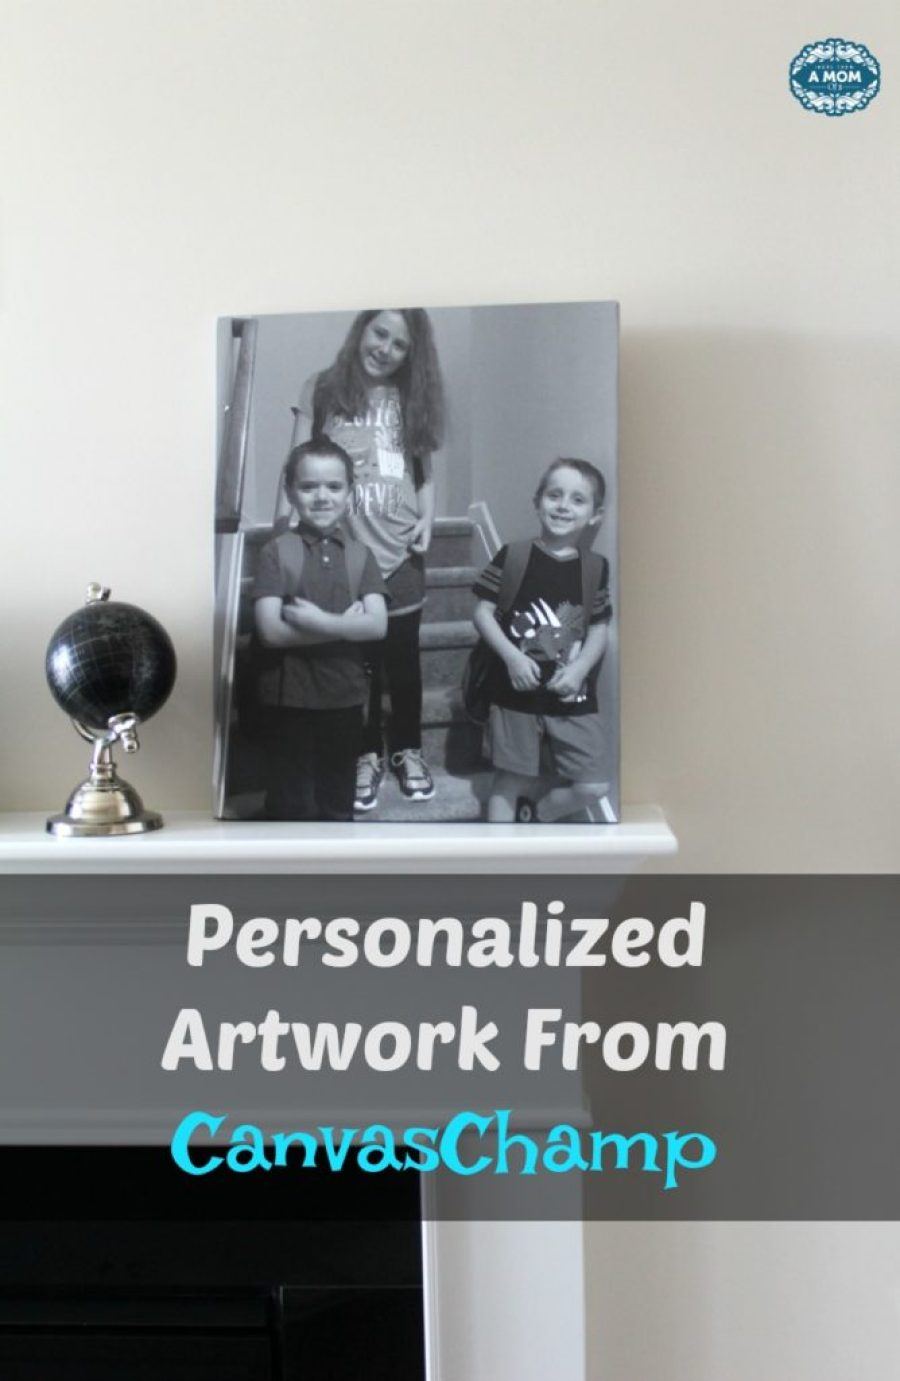 Personalized Artwork From CanvasChamp